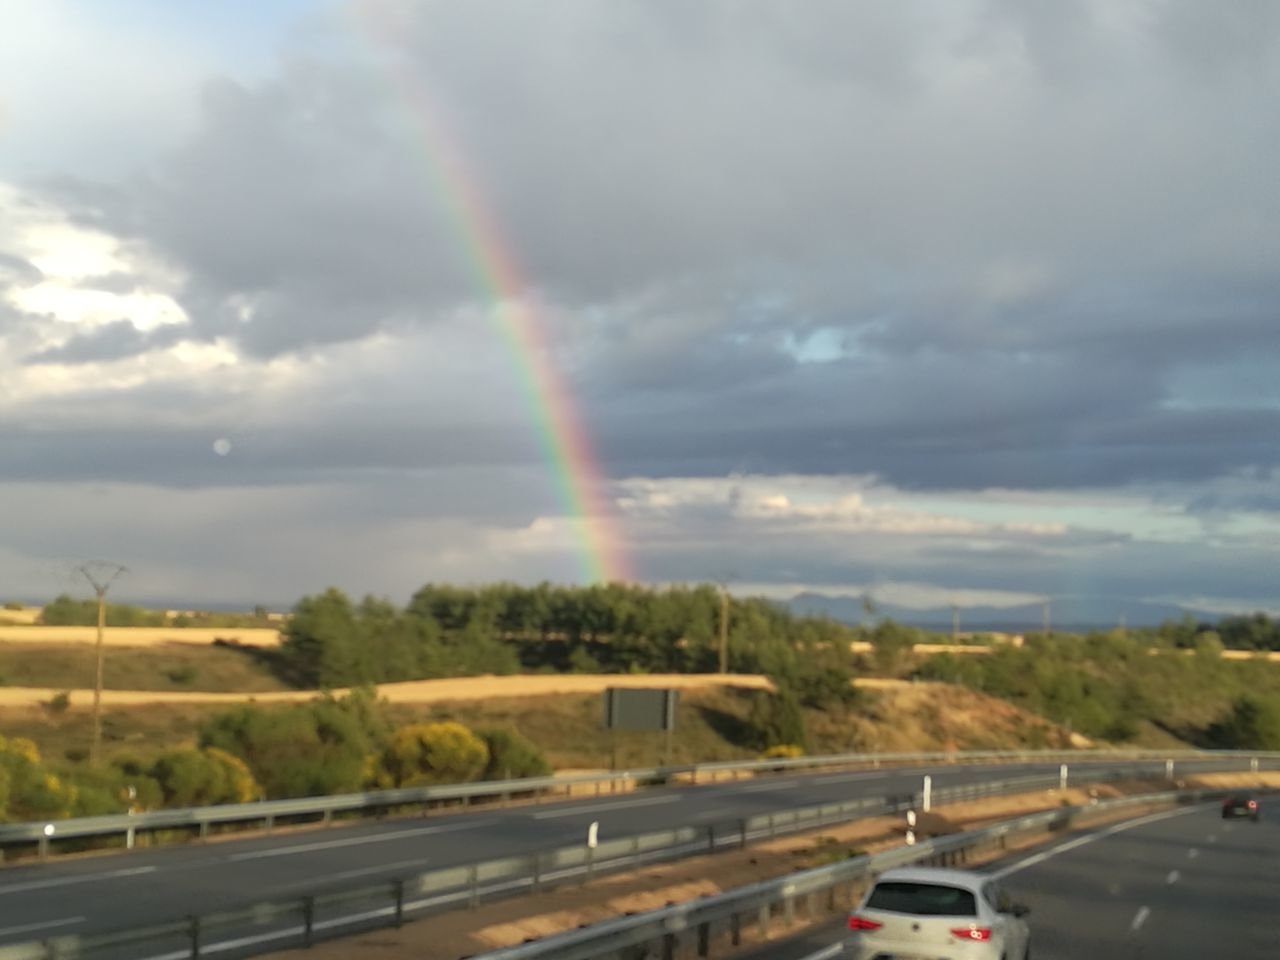 rainbow, transportation, road, cloud - sky, sky, double rainbow, car, mode of transport, no people, scenics, speed, nature, outdoors, motion, day, beauty in nature, tree